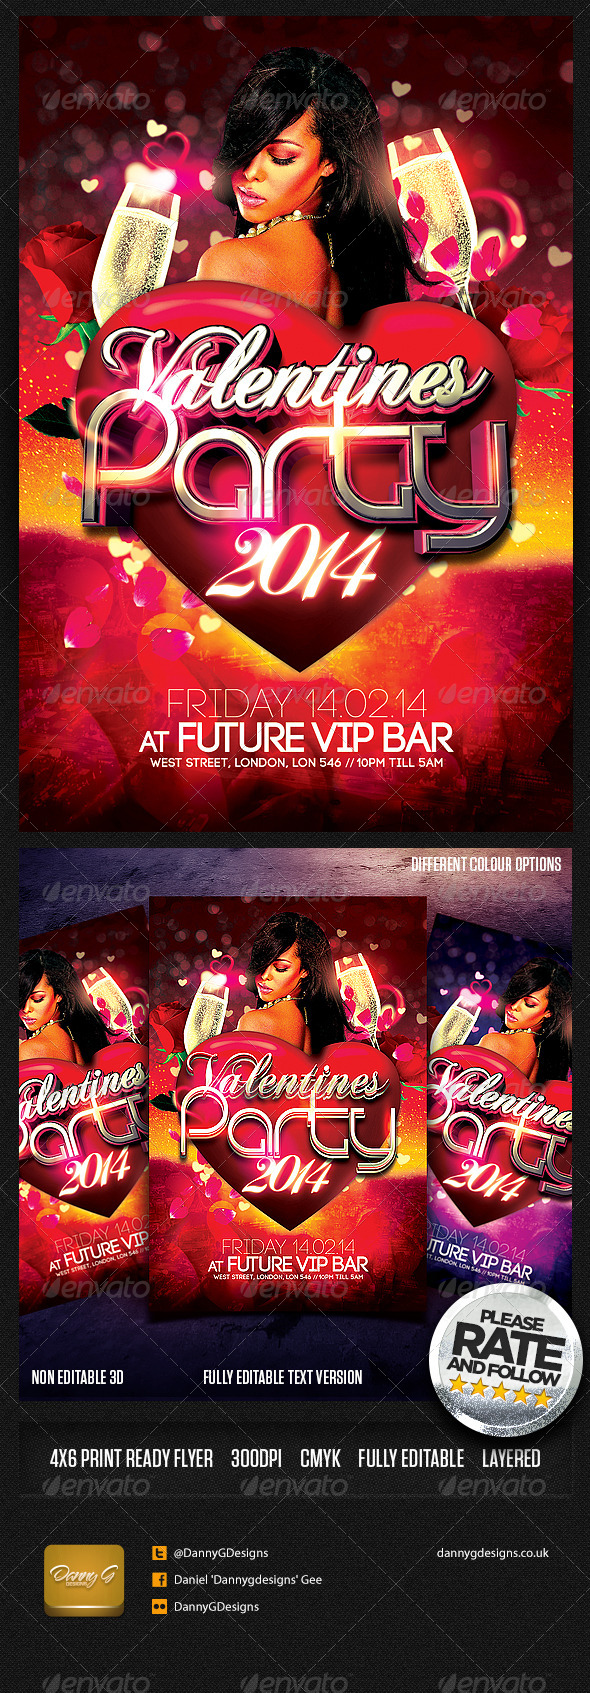 Valentines Party 2014 Flyer Template - Clubs & Parties Events